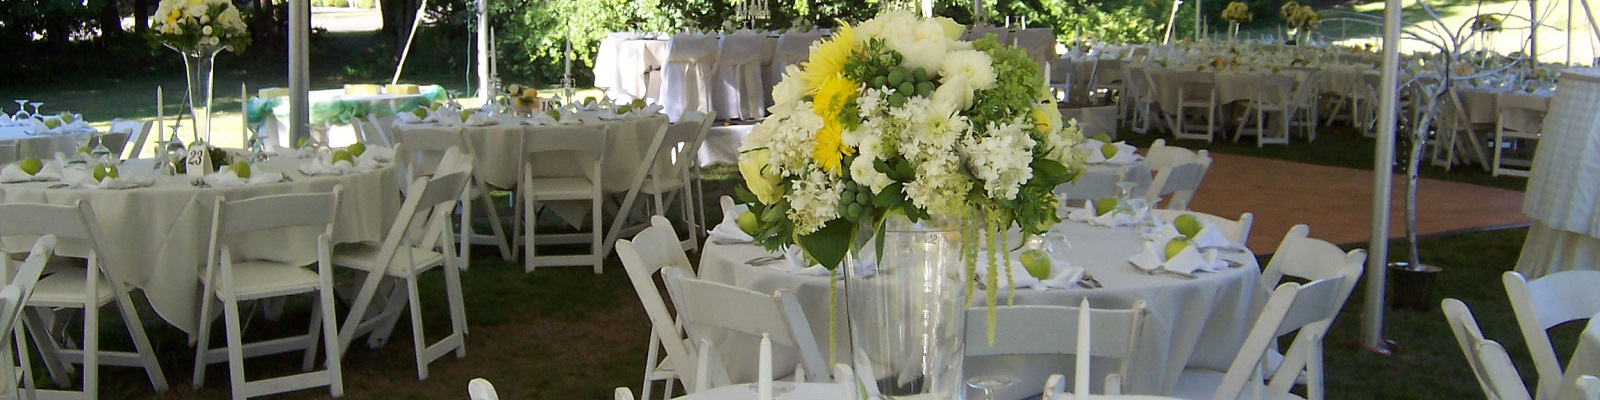 Wedding rentals in Vancouver/Portland, Clark County Washington